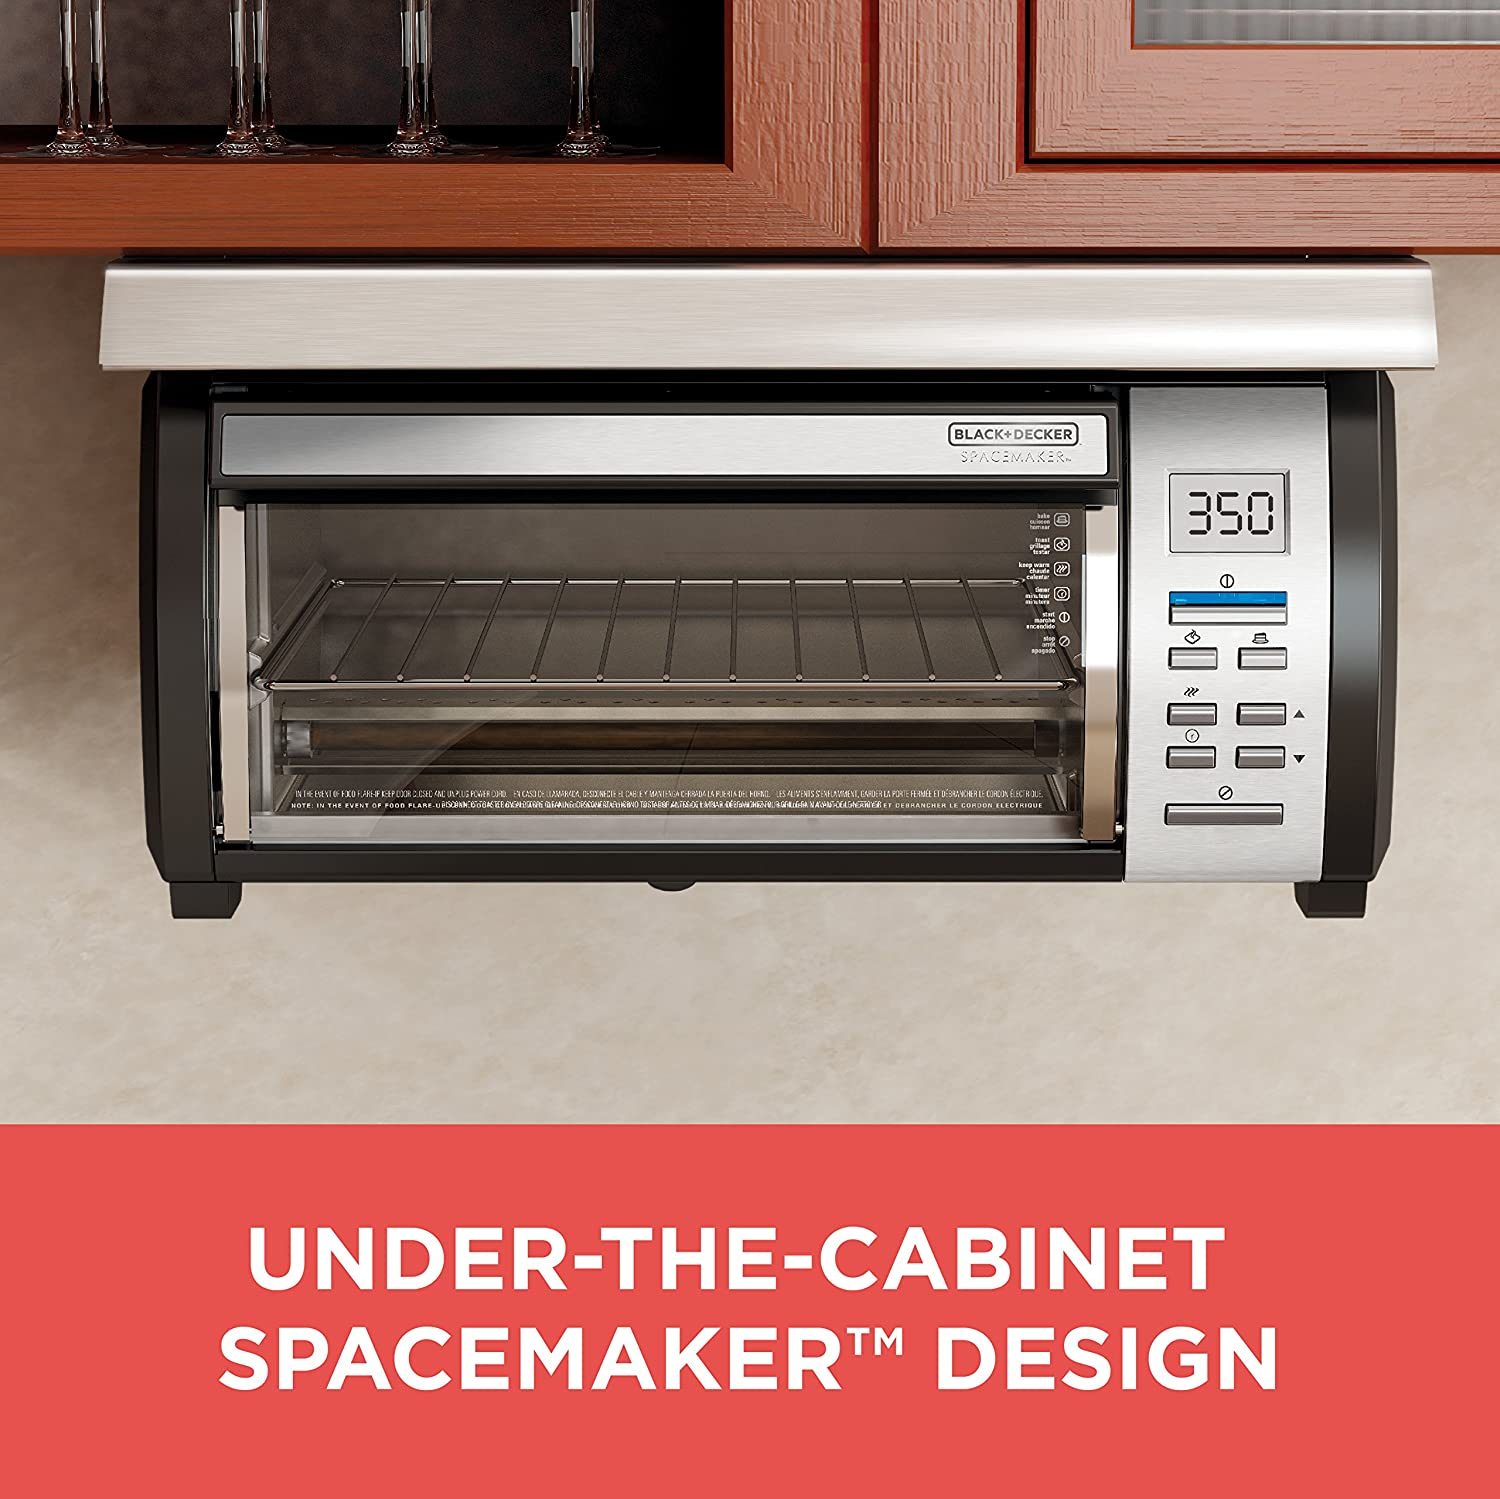 Kitchen tv under cabinet - Amazon Com Black Decker Tros1000d Spacemaker Under The Cabinet 4 Slice Toaster Oven Black Stainless Steel Under The Counter Toaster Oven Kitchen